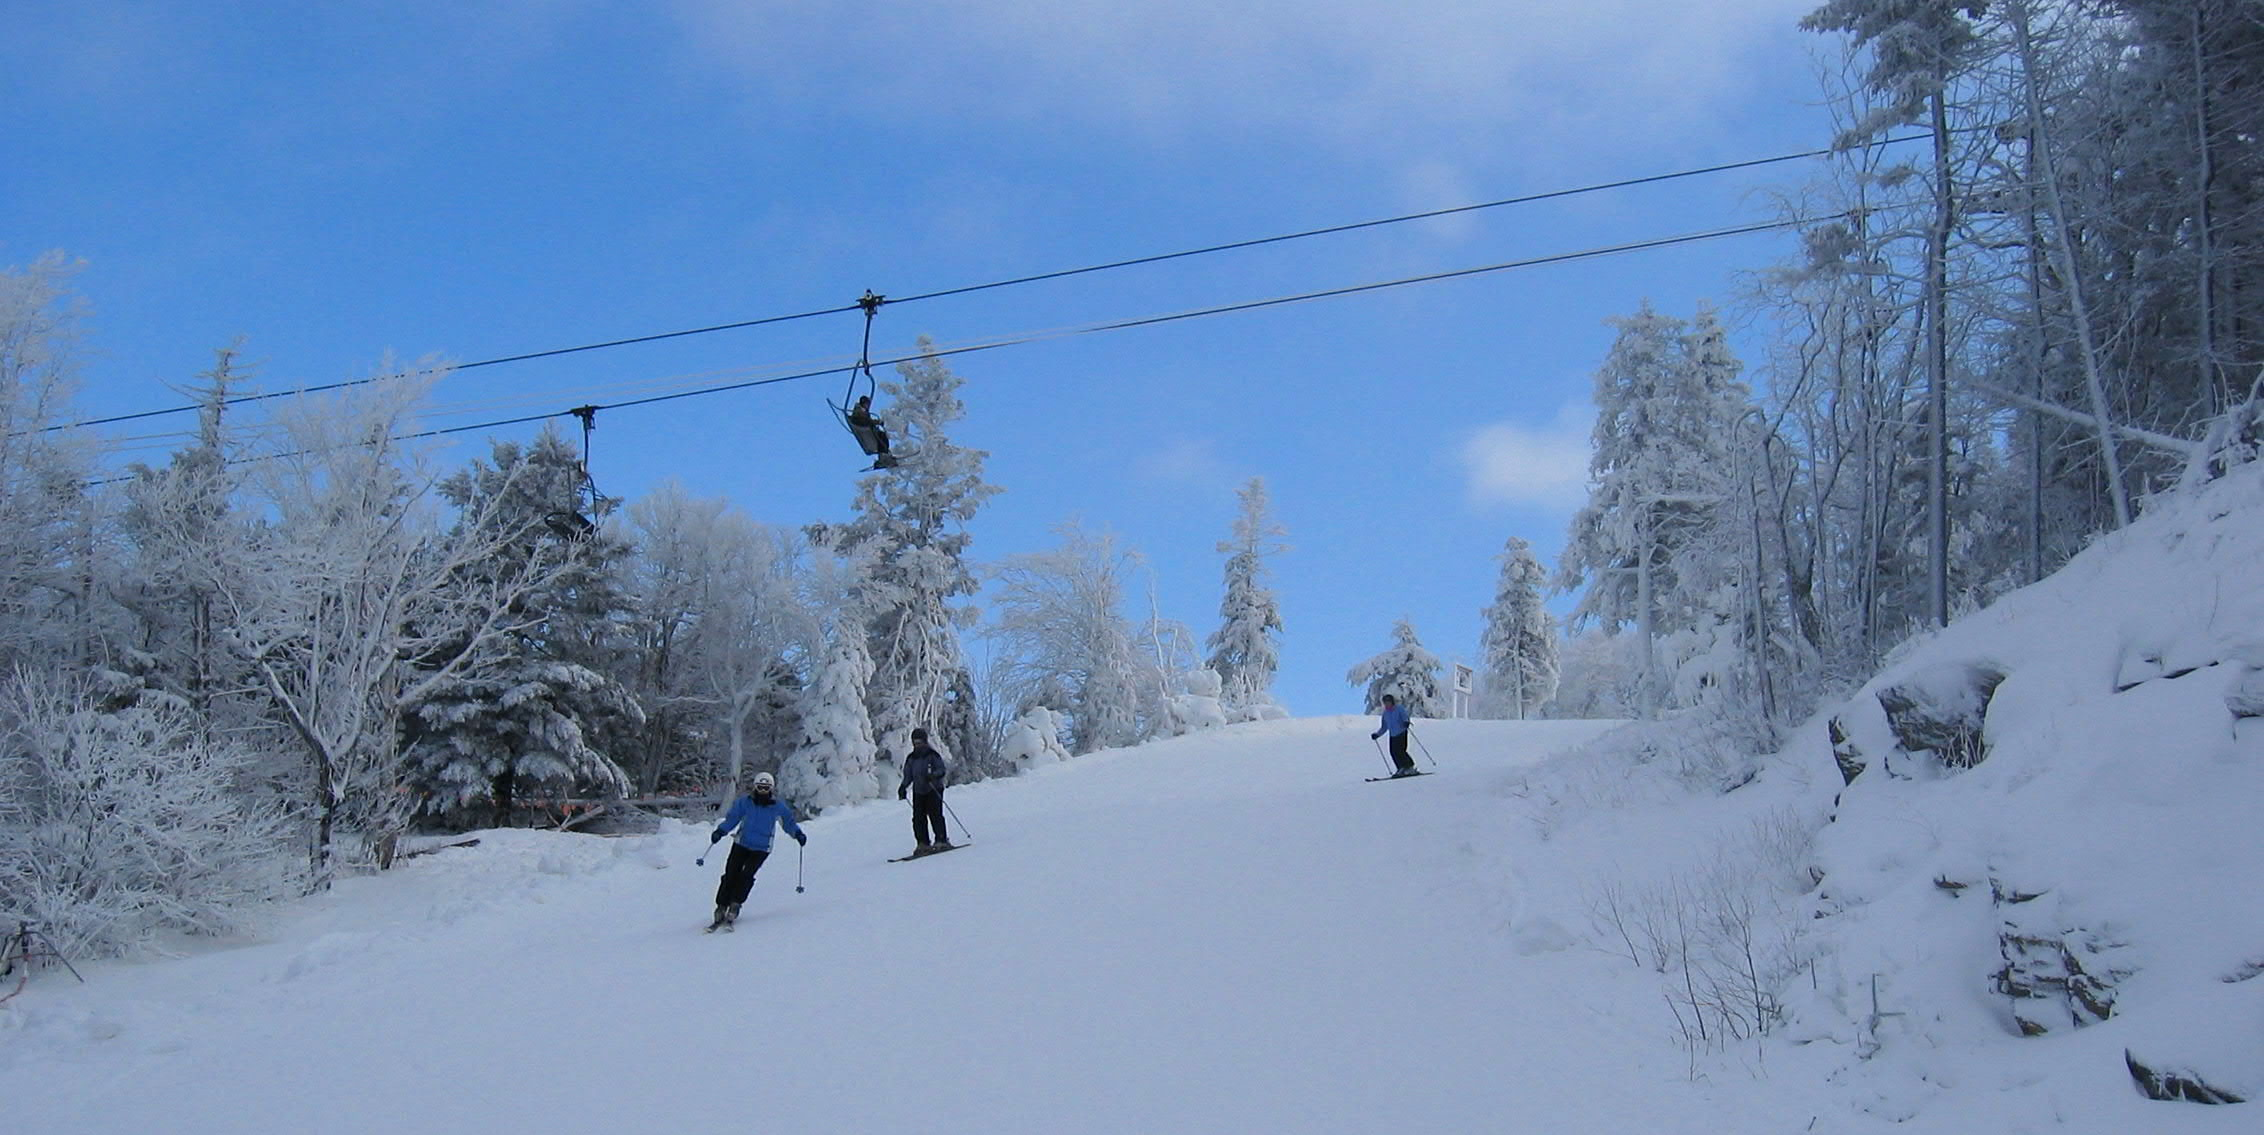 Correspondent Justin Jones travels to beautiful Mount Sunapee for opening day, which also happens to be his first day of skiing this winter season. He finds that the skiing is great, but his preparedness is not, and shares his lesson.